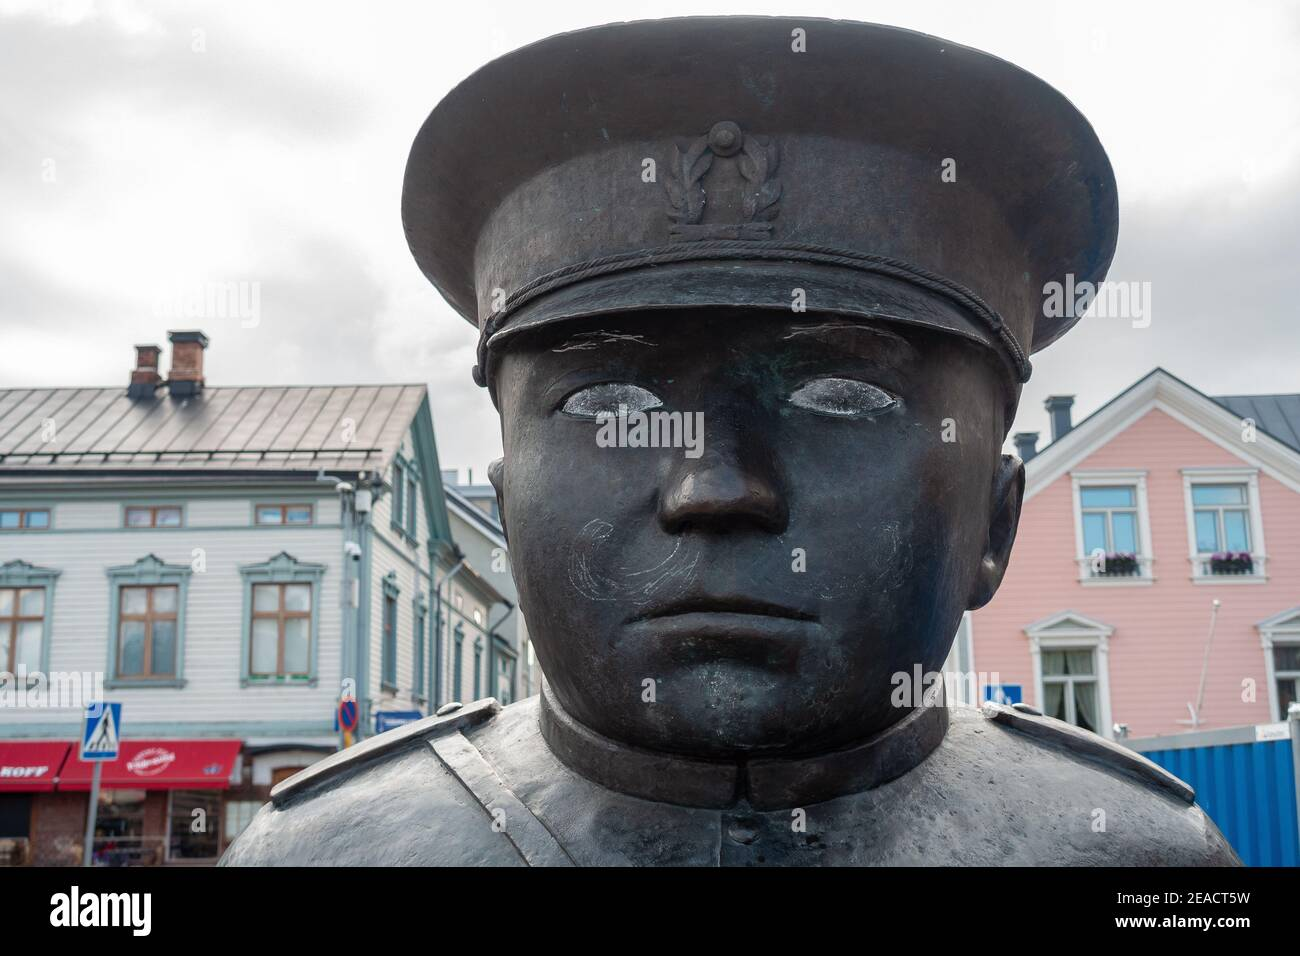 White painted eyes of The Bobby at the Market (Toripolliisi) statue at market square in Oulu Finland Stock Photo